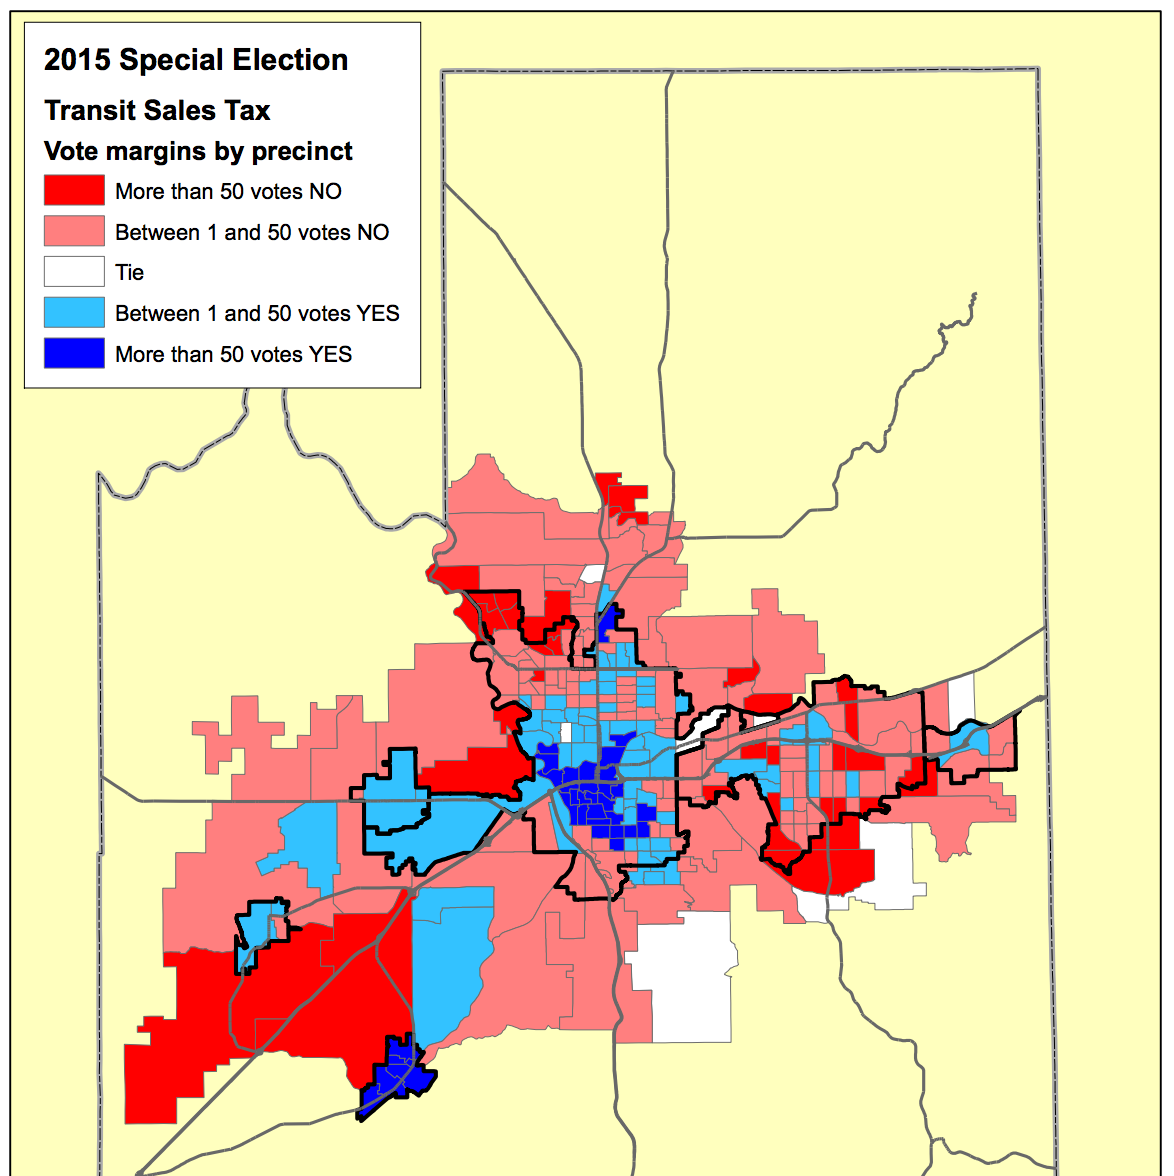 Precinct-level results from the 2015 STA Moving Forward Vote (courtesy Spokesman Review)